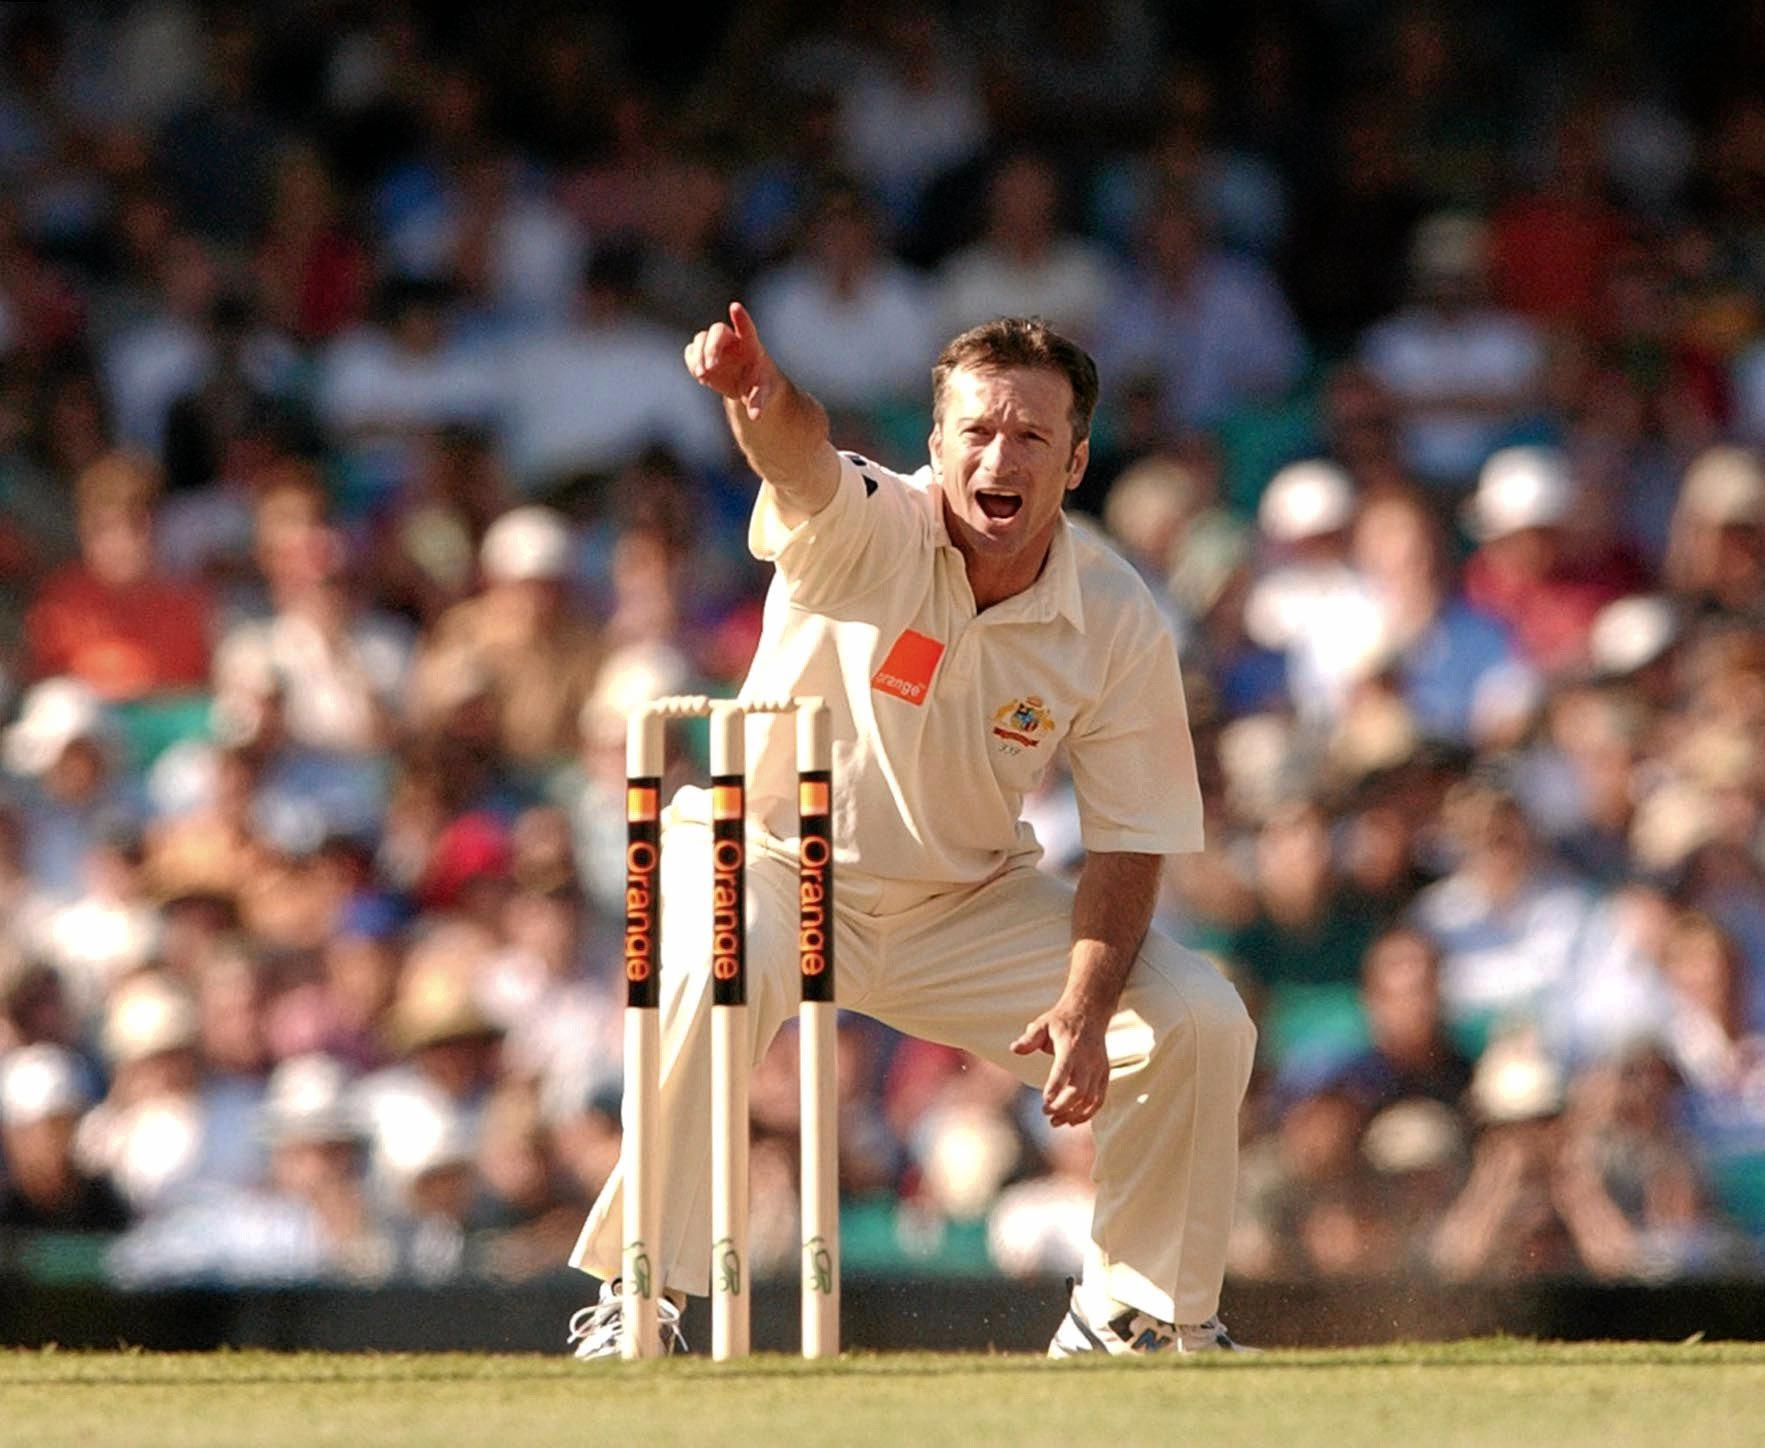 Australian captain Steve Waugh appeals to the umpire for the wicket of Englands Robert Key during day 1 of the 5th Ashes test at the SCG in 2002.  (AAP Image/Dean Lewins)